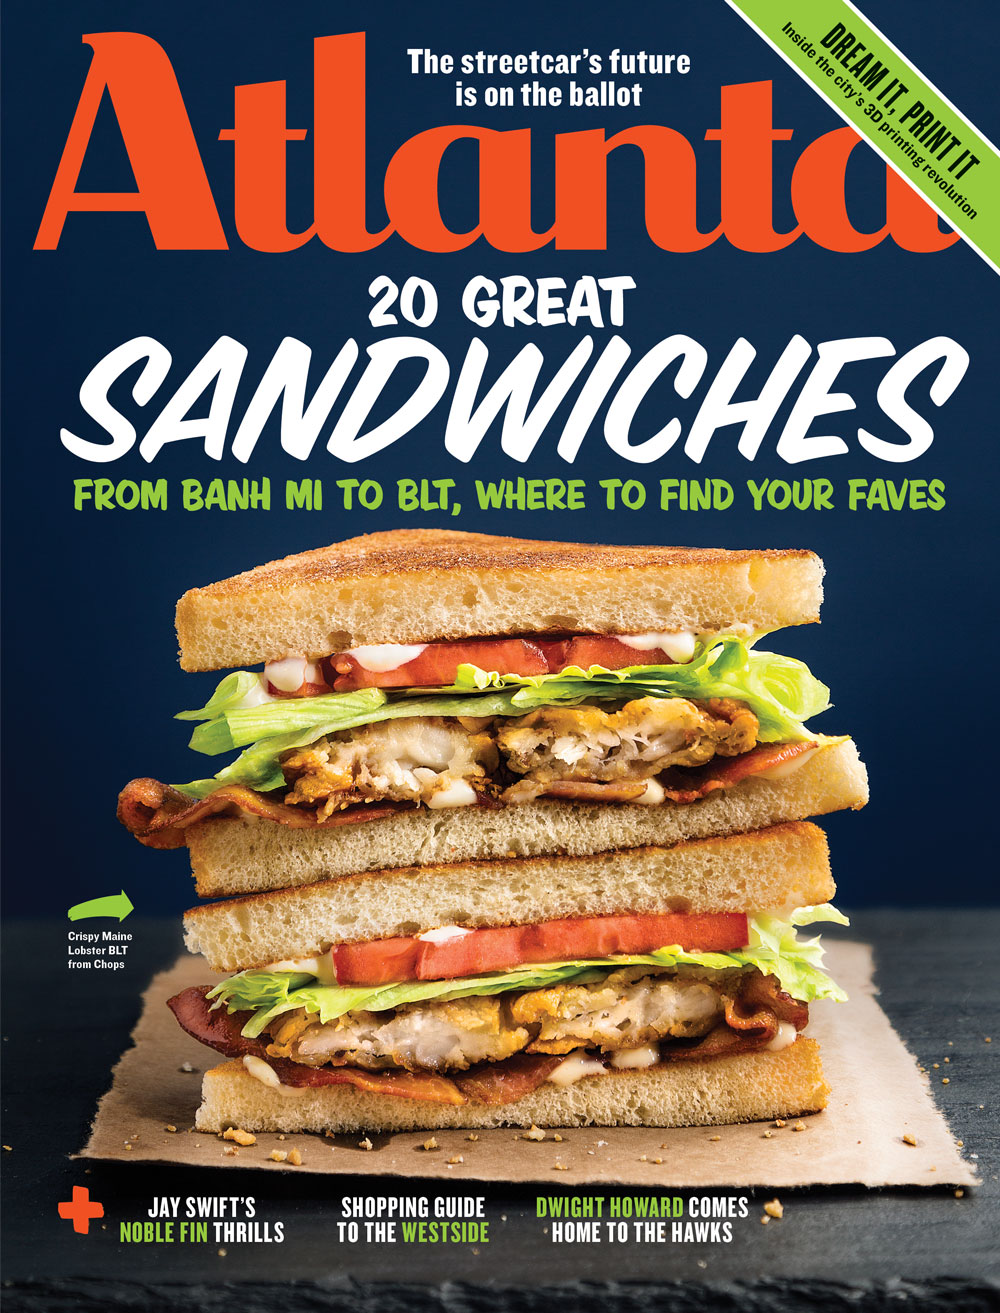 Atlanta's 20 great sandwiches